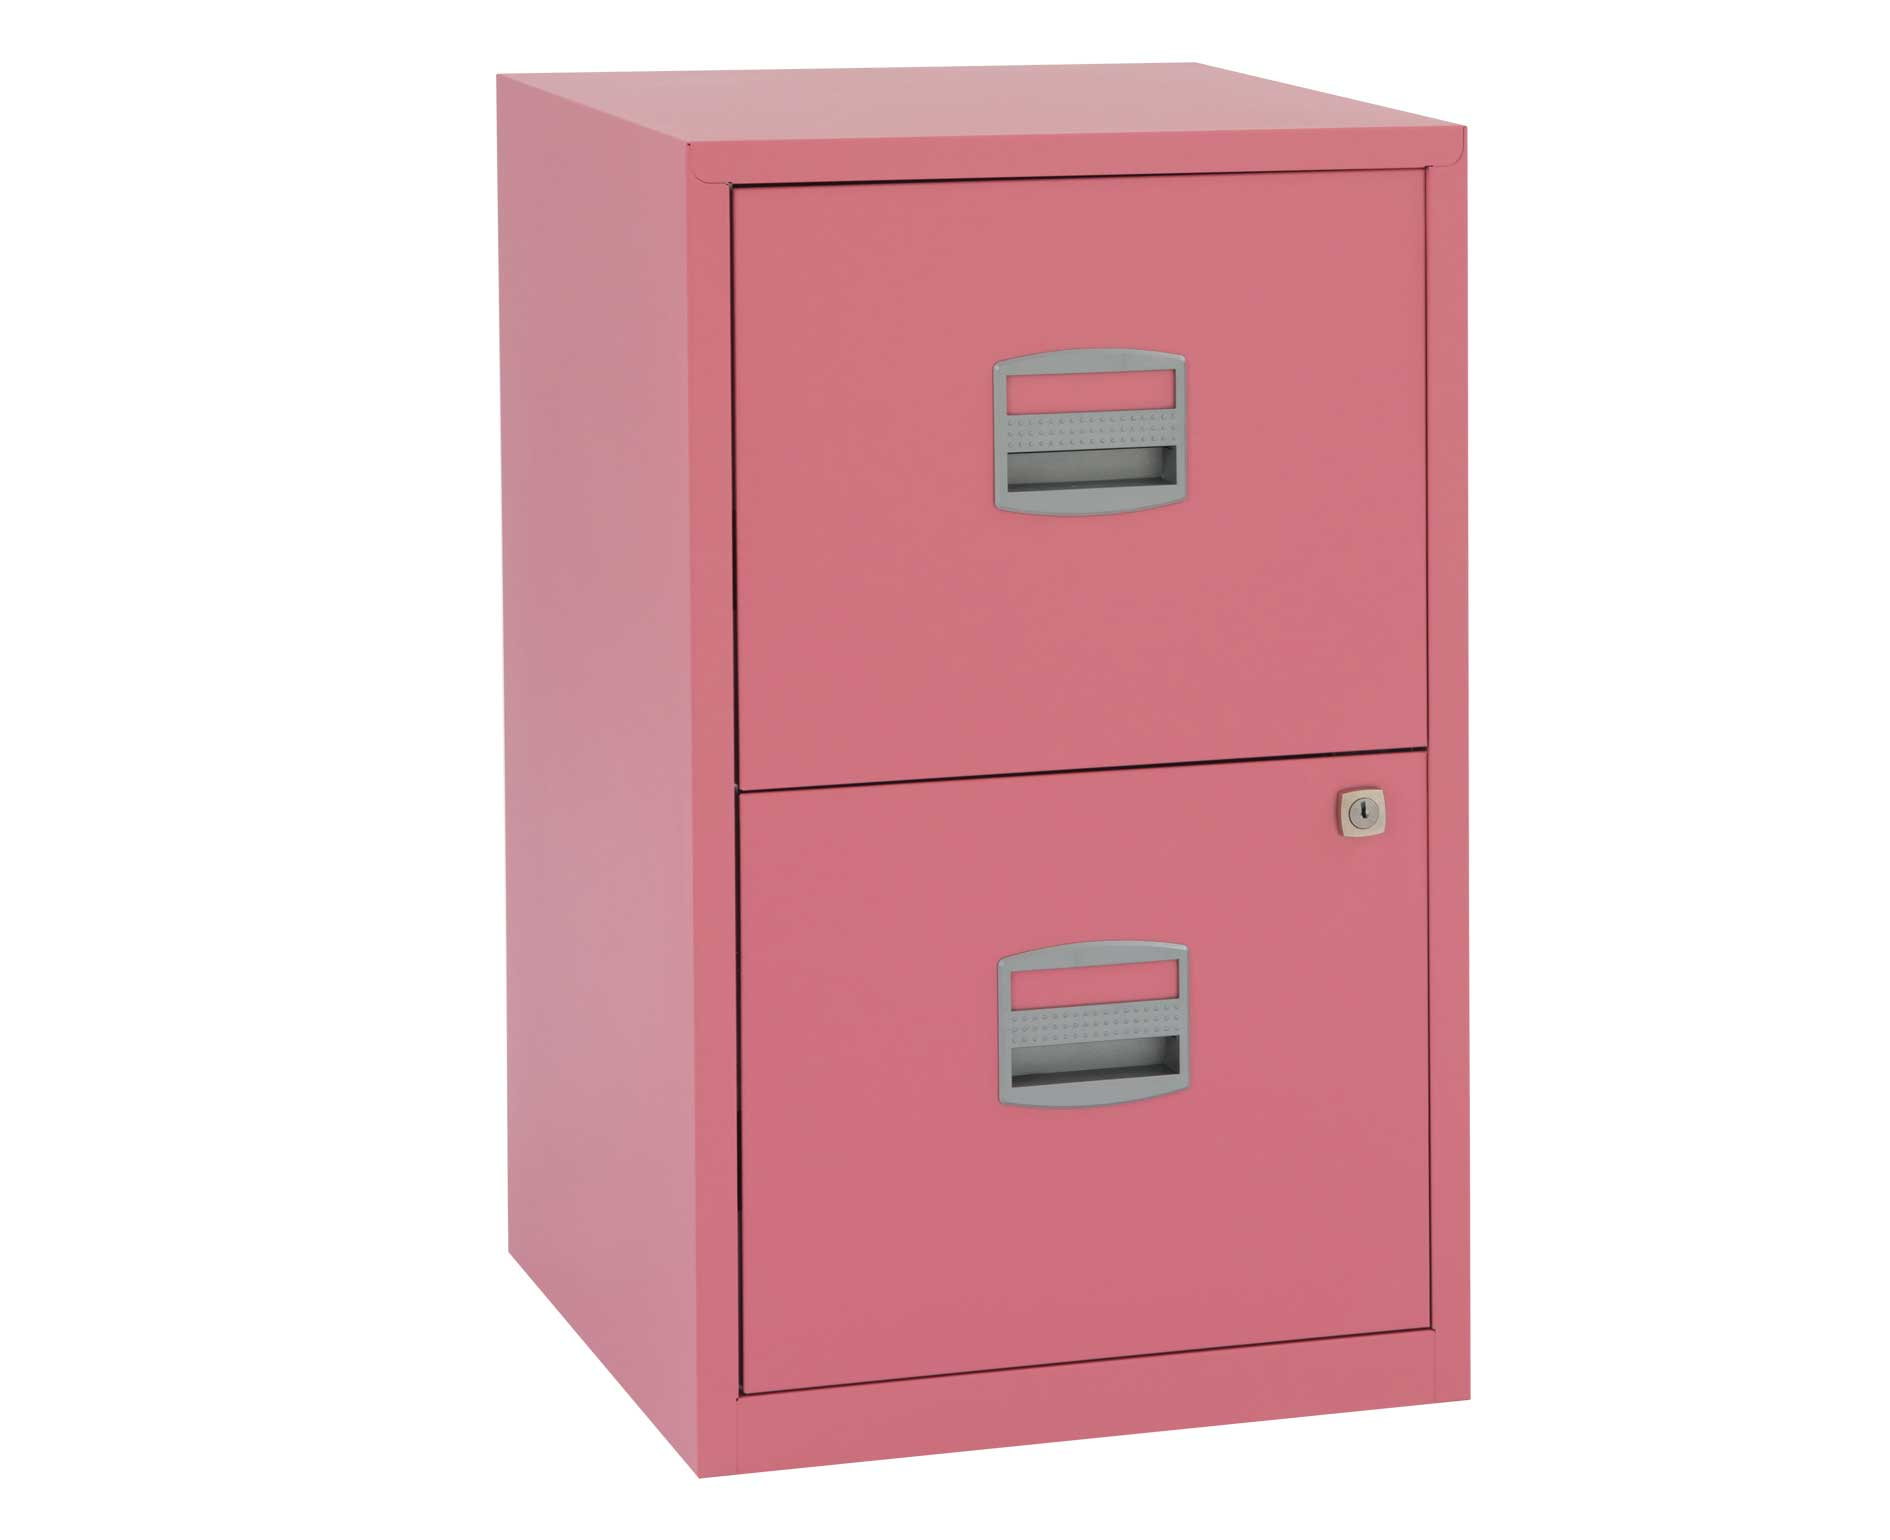 Brilliant Bisley File Cabinet for Best File Storage Ideas: Bisley Filing Cabinets 4 Drawer | Bisley File Cabinet | Bisley 3 Drawer Filing Cabinet